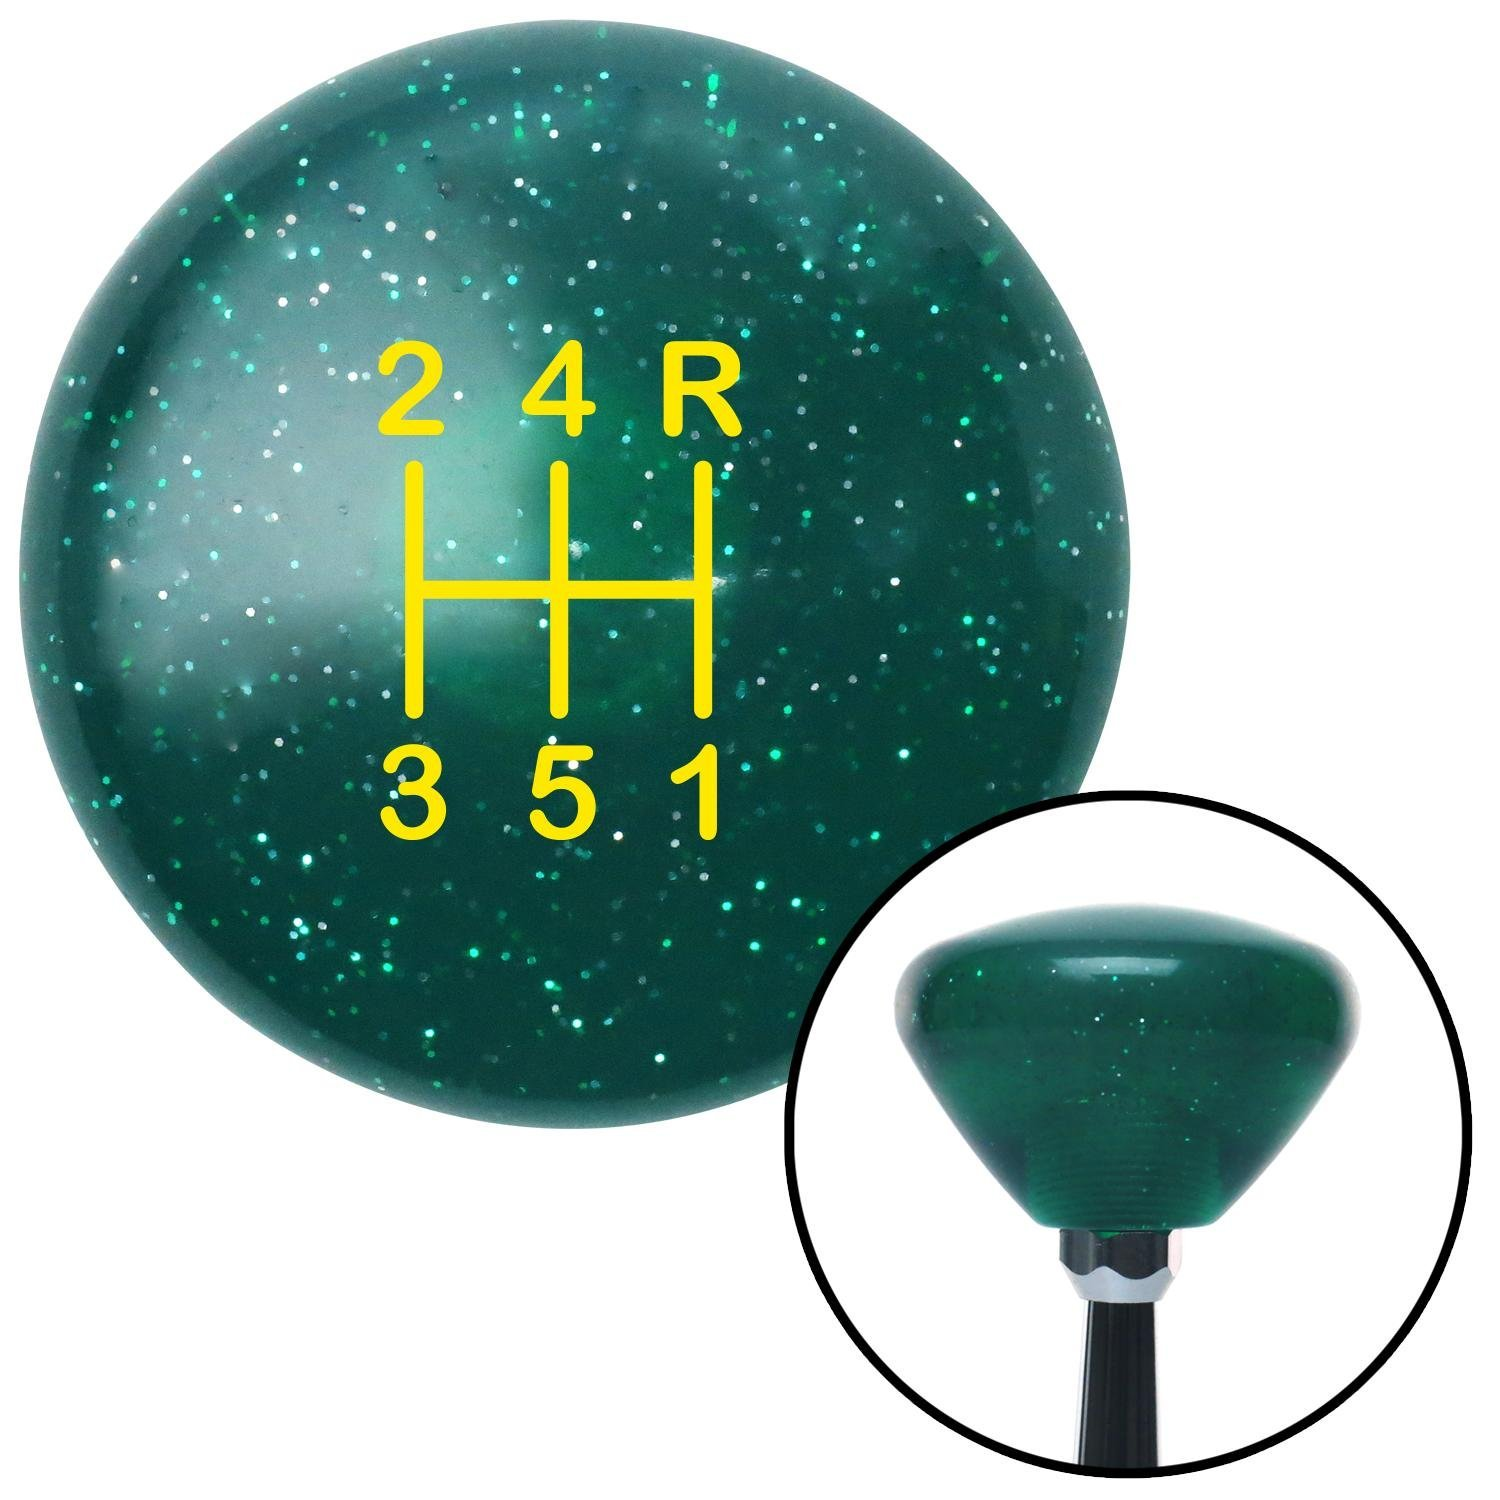 Yellow Shift Pattern 47n American Shifter 208730 Green Retro Metal Flake Shift Knob with M16 x 1.5 Insert